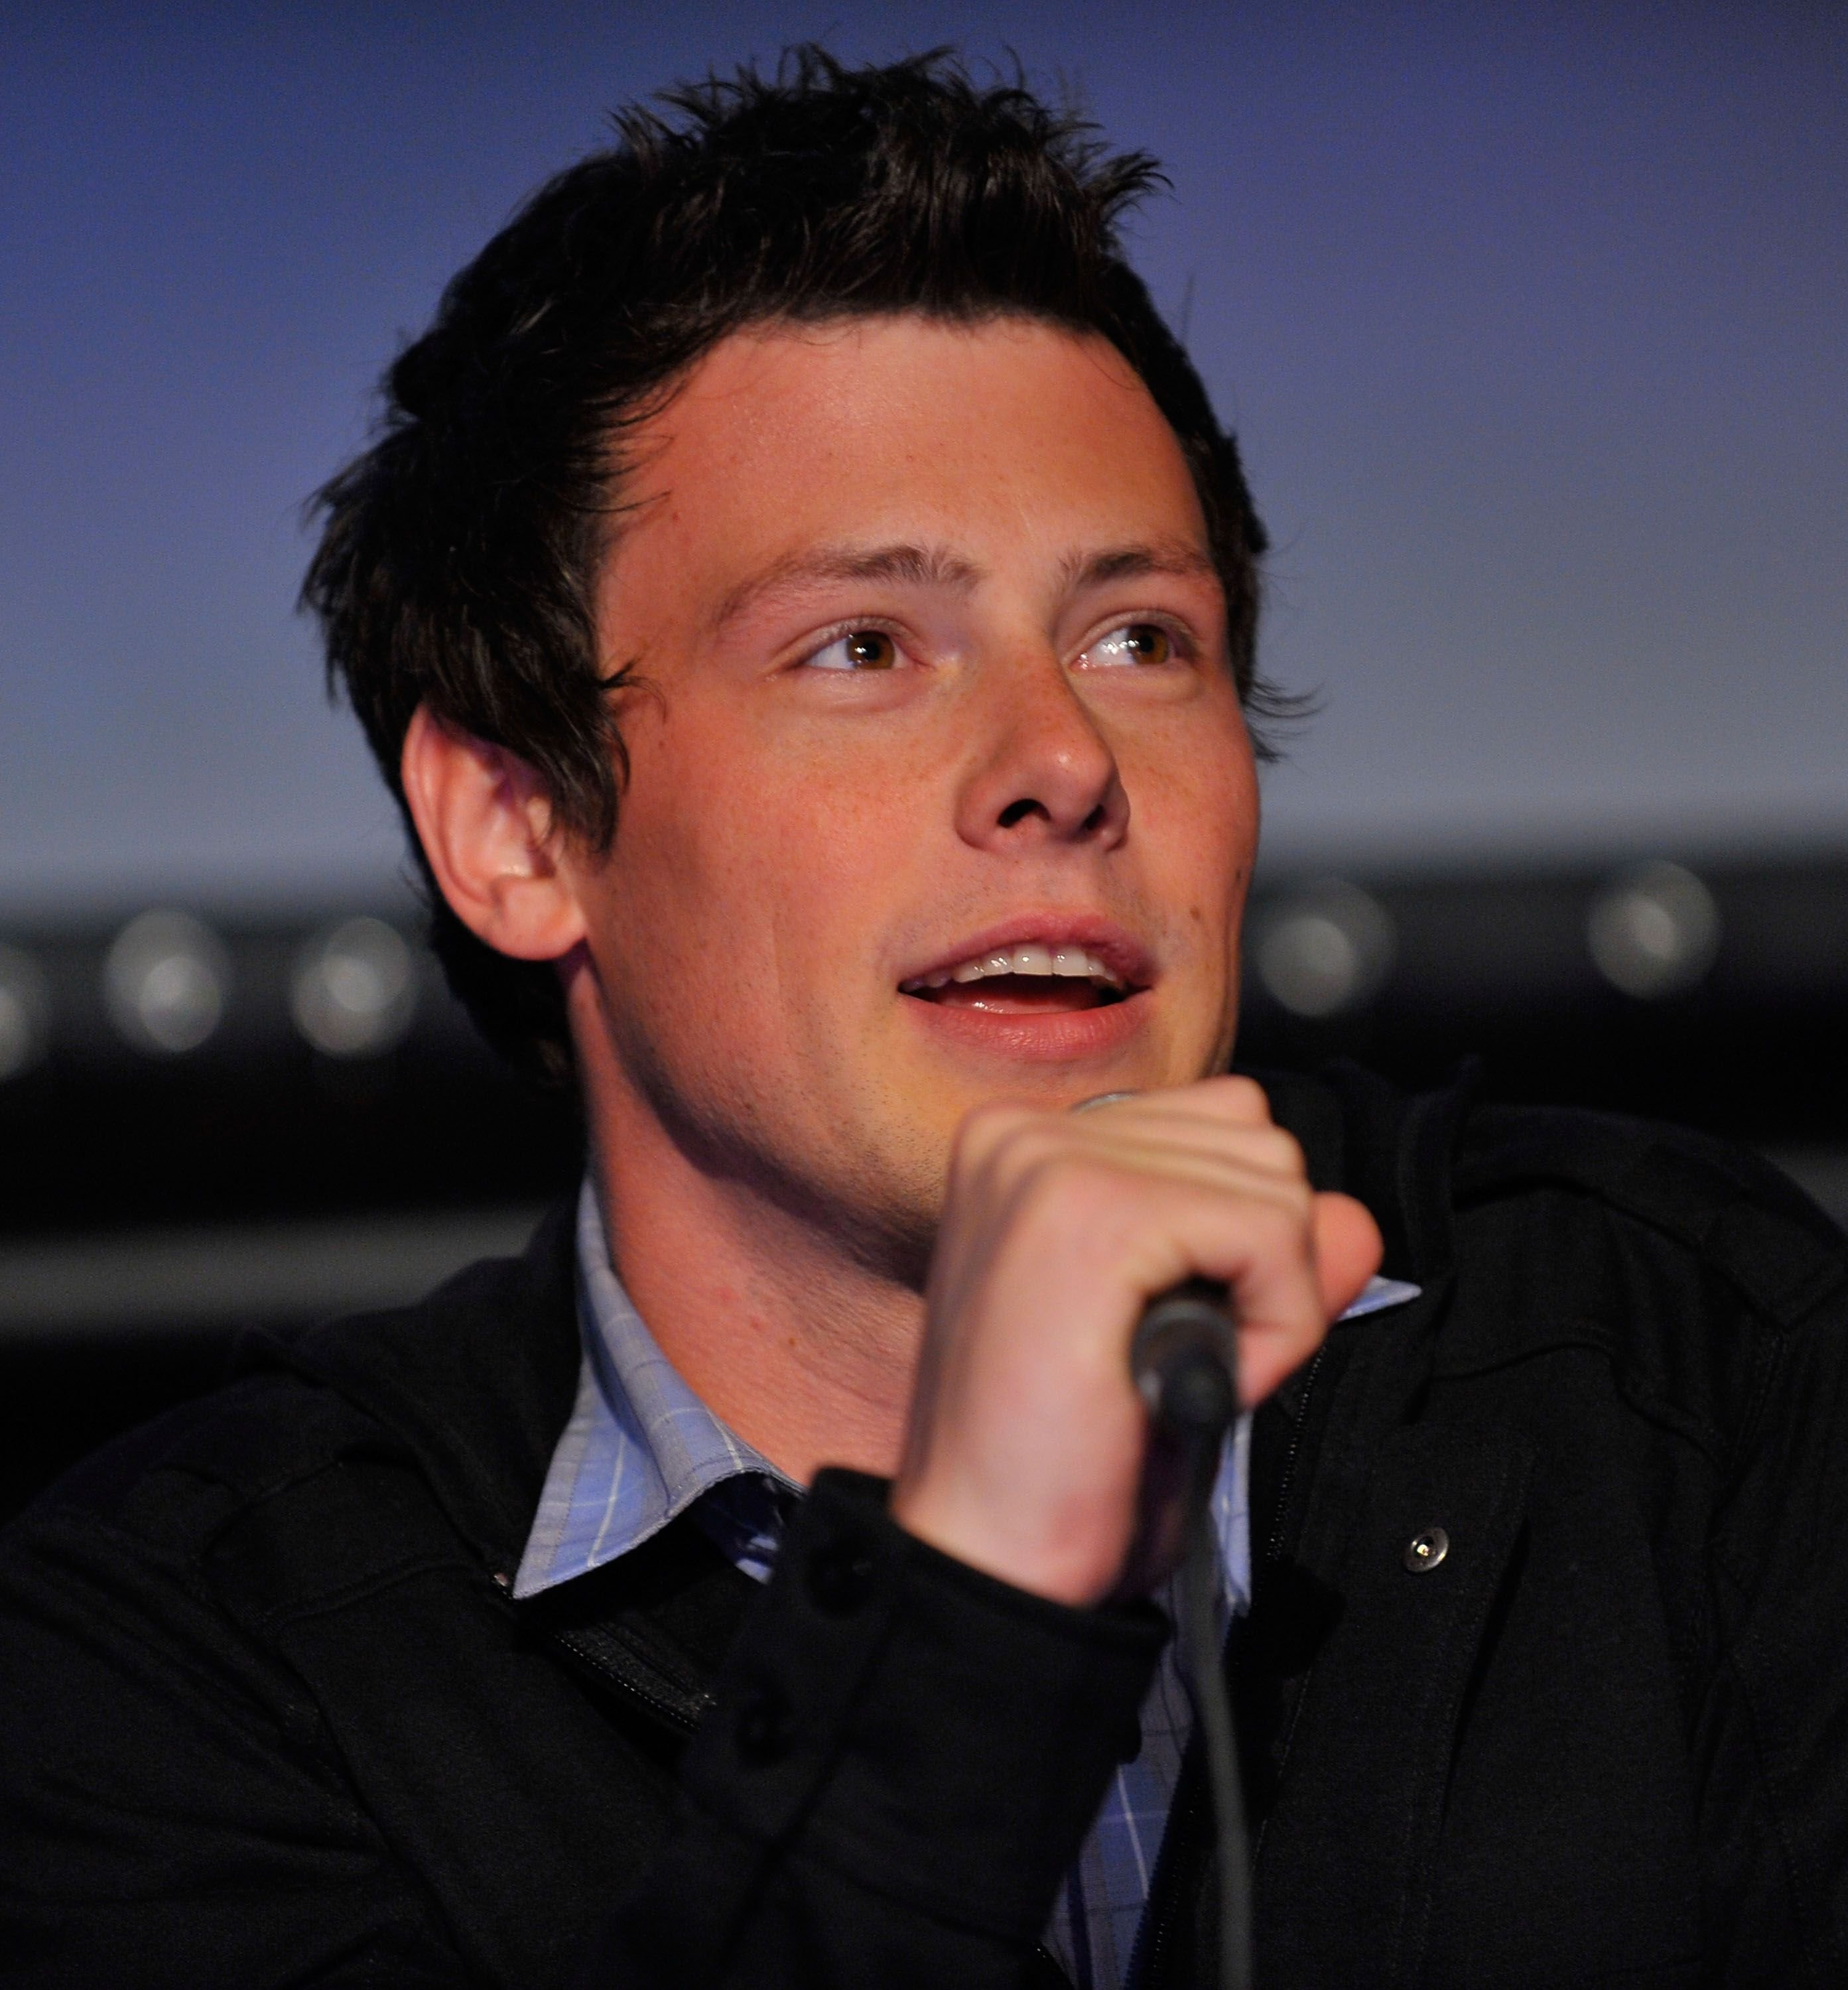 Cory Monteith at a Q&A session at the GLEE premiere event in 2009 in Santa Monica | Source: Getty Images